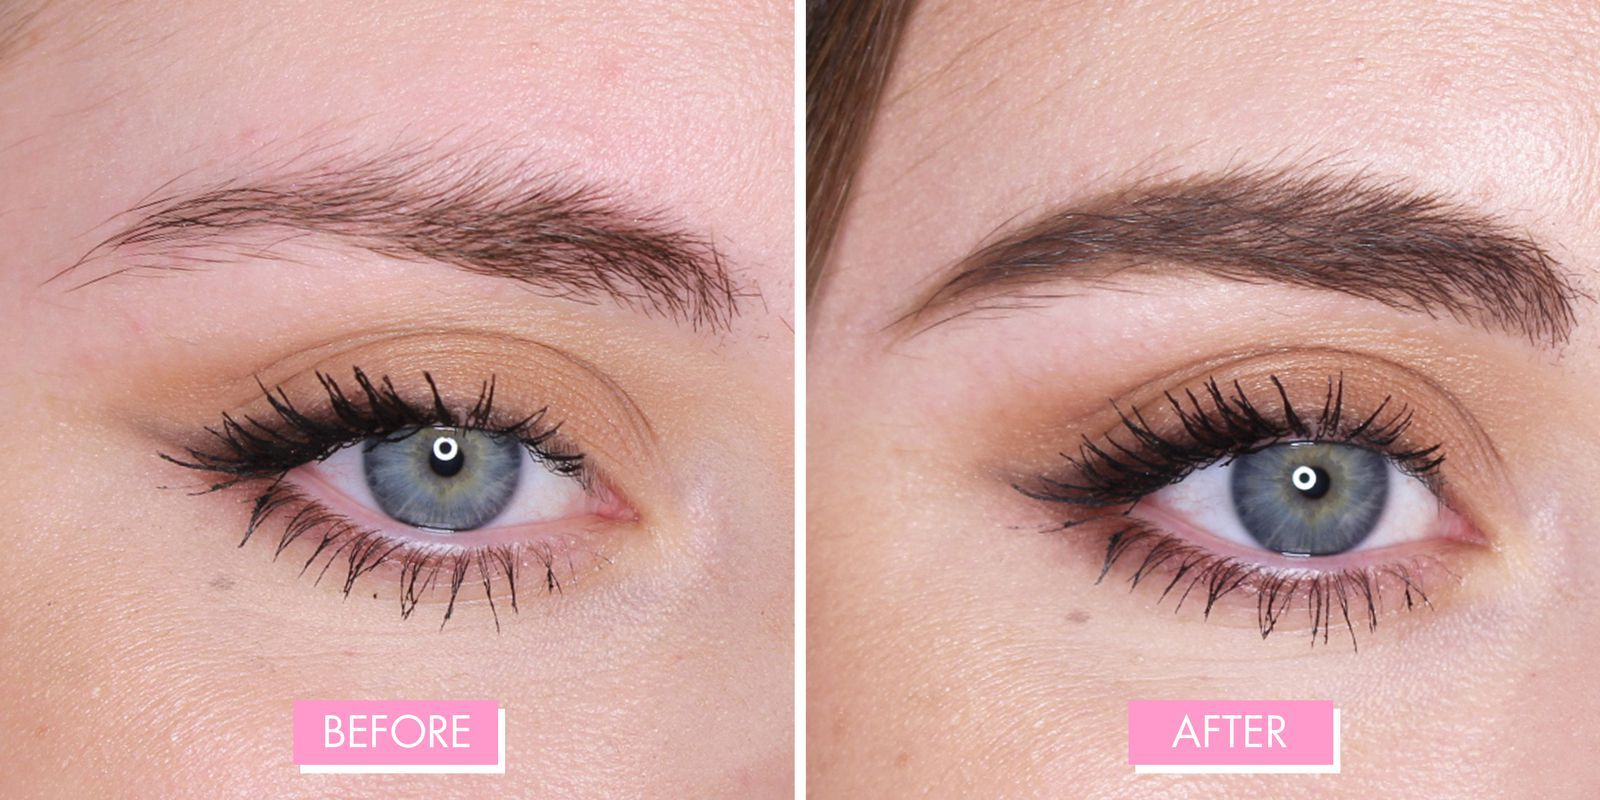 Here's what 11 of the best eyebrow products look like IRL